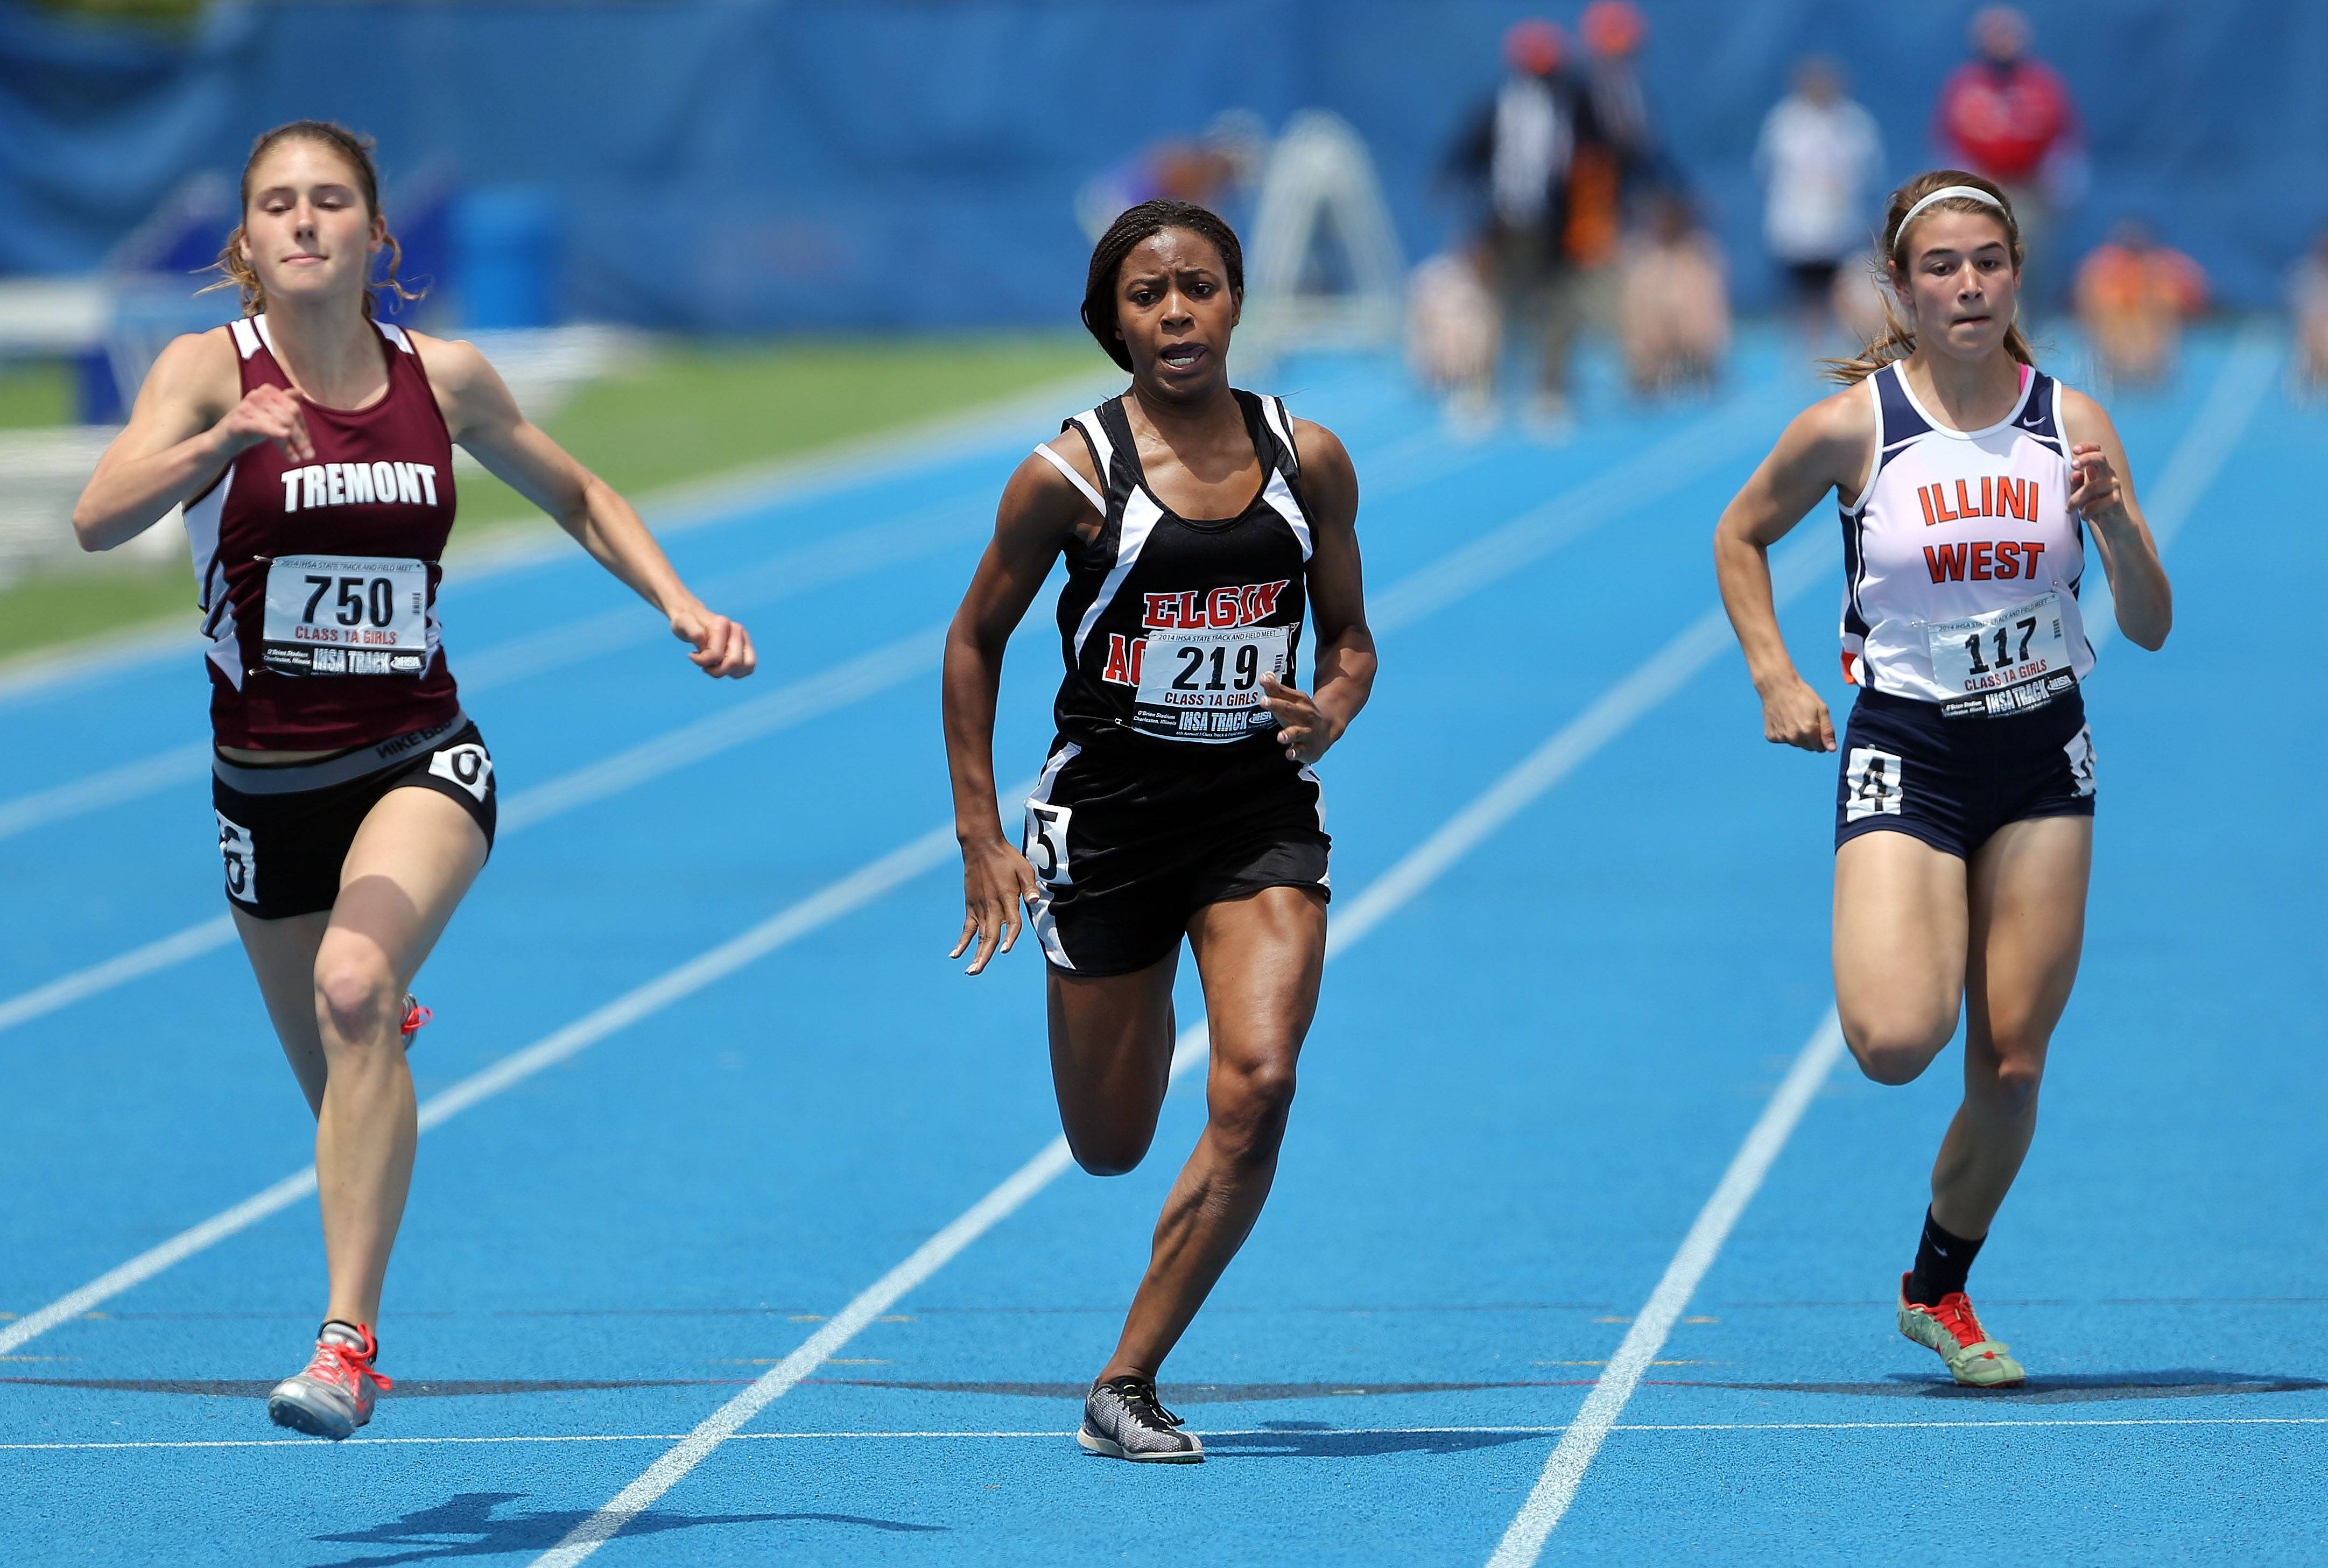 Elgin Academy's Kaitlyn Pearson, center, powers to the finish in the 100-meter dash during the girls track and field state finals at Eastern Illinois University in Charleston Saturday.